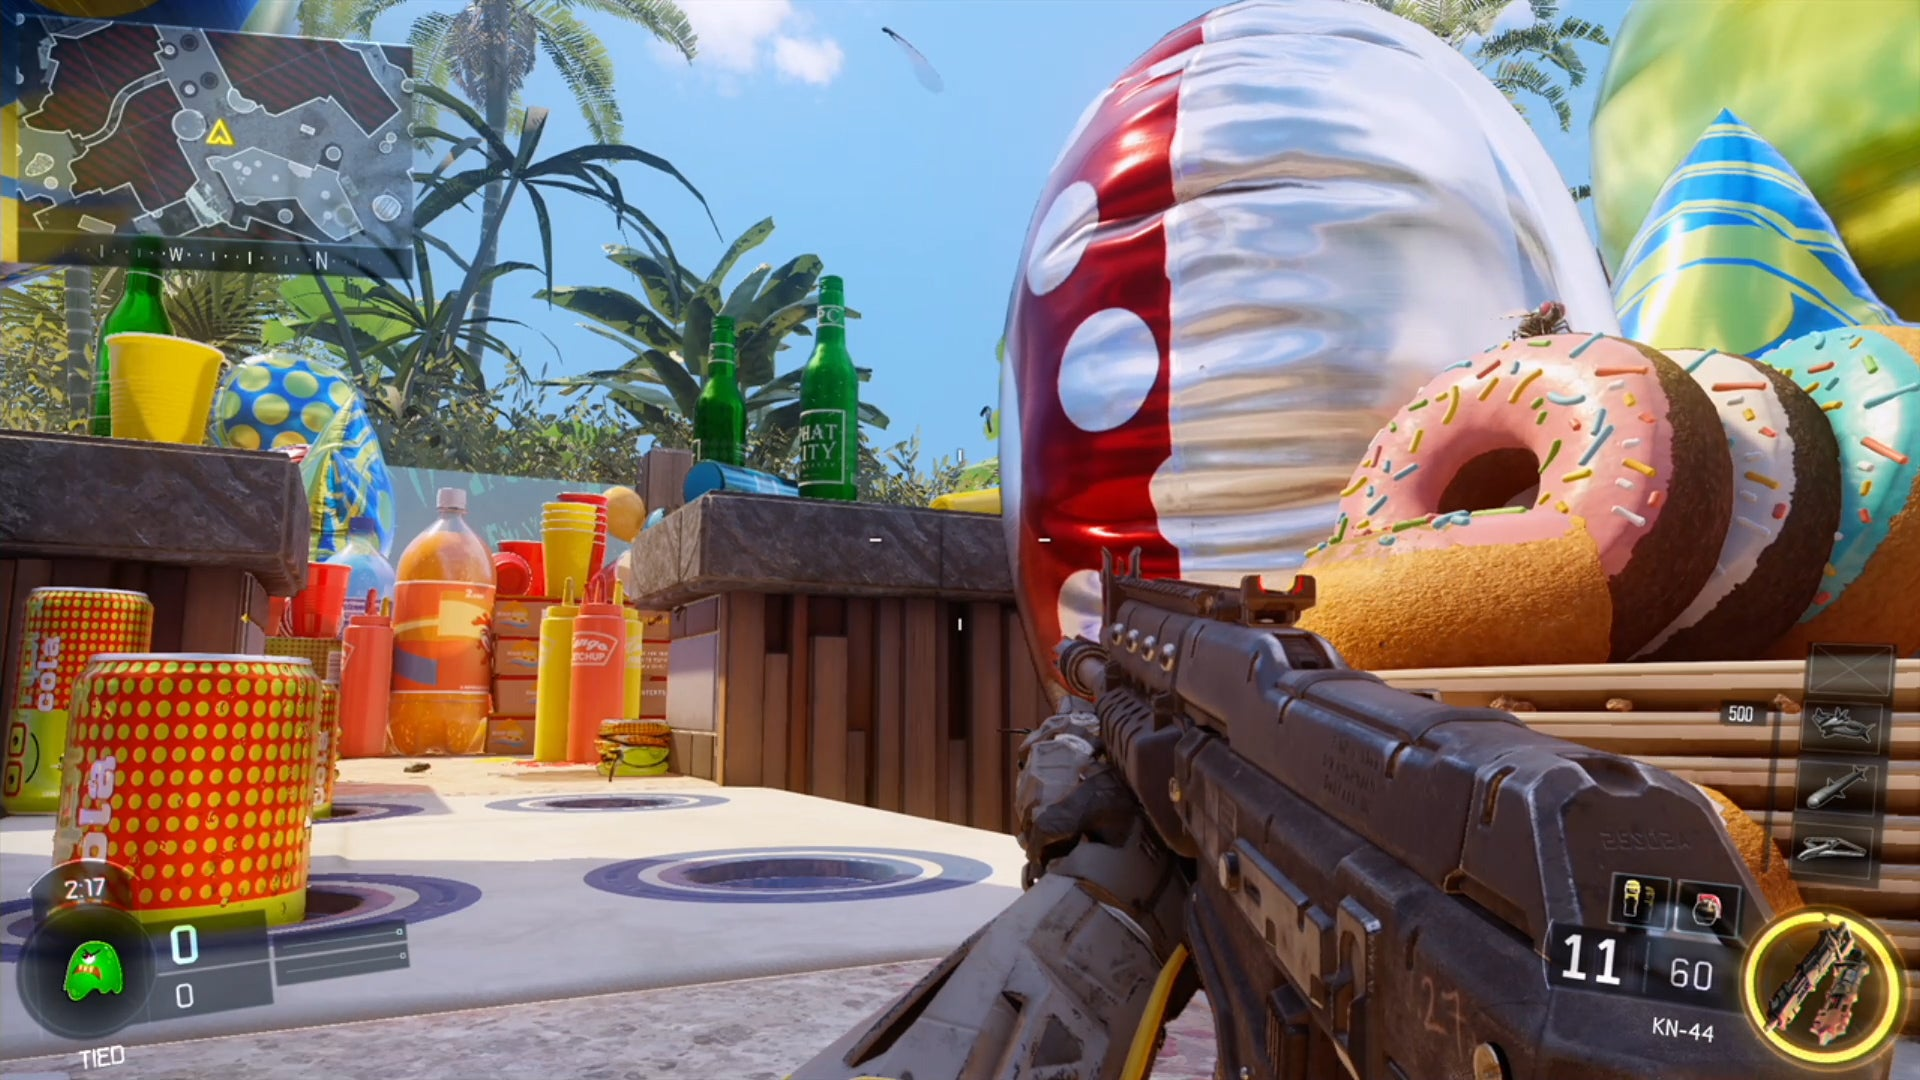 Black Ops III's New Micro-Map Is Full Of Amazing, Tiny Details